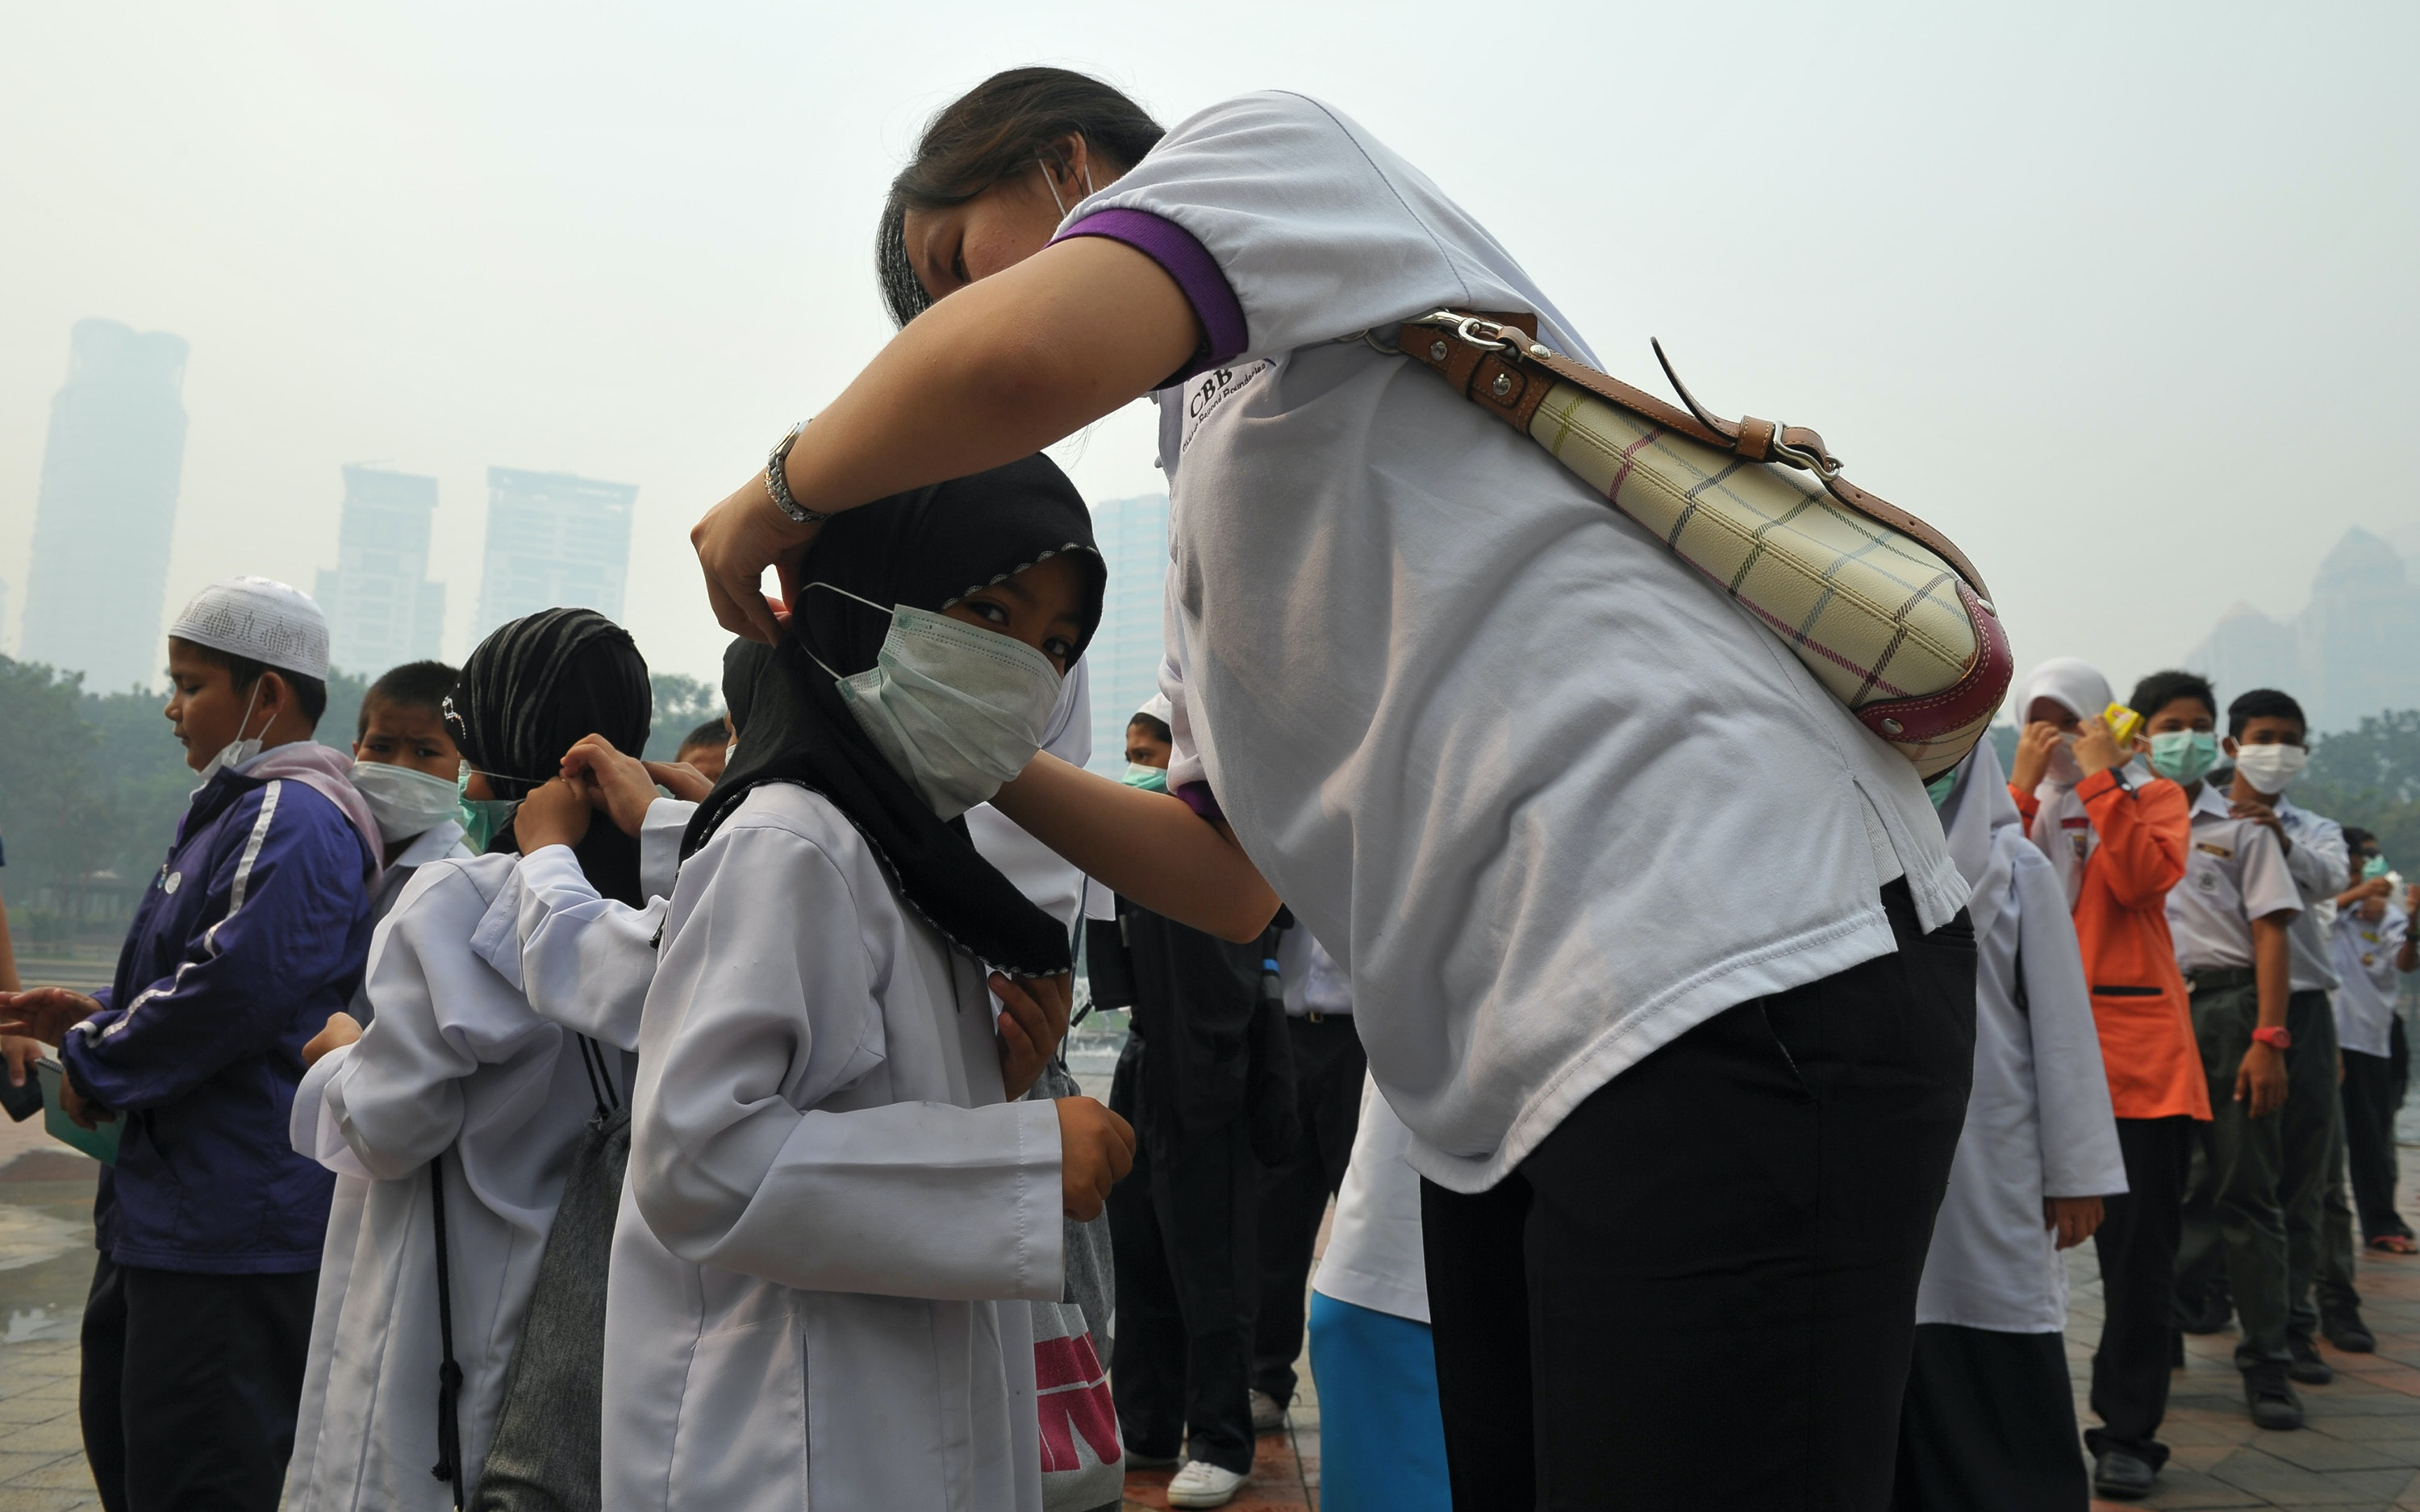 A group of students and a teacher under a haze filled sky